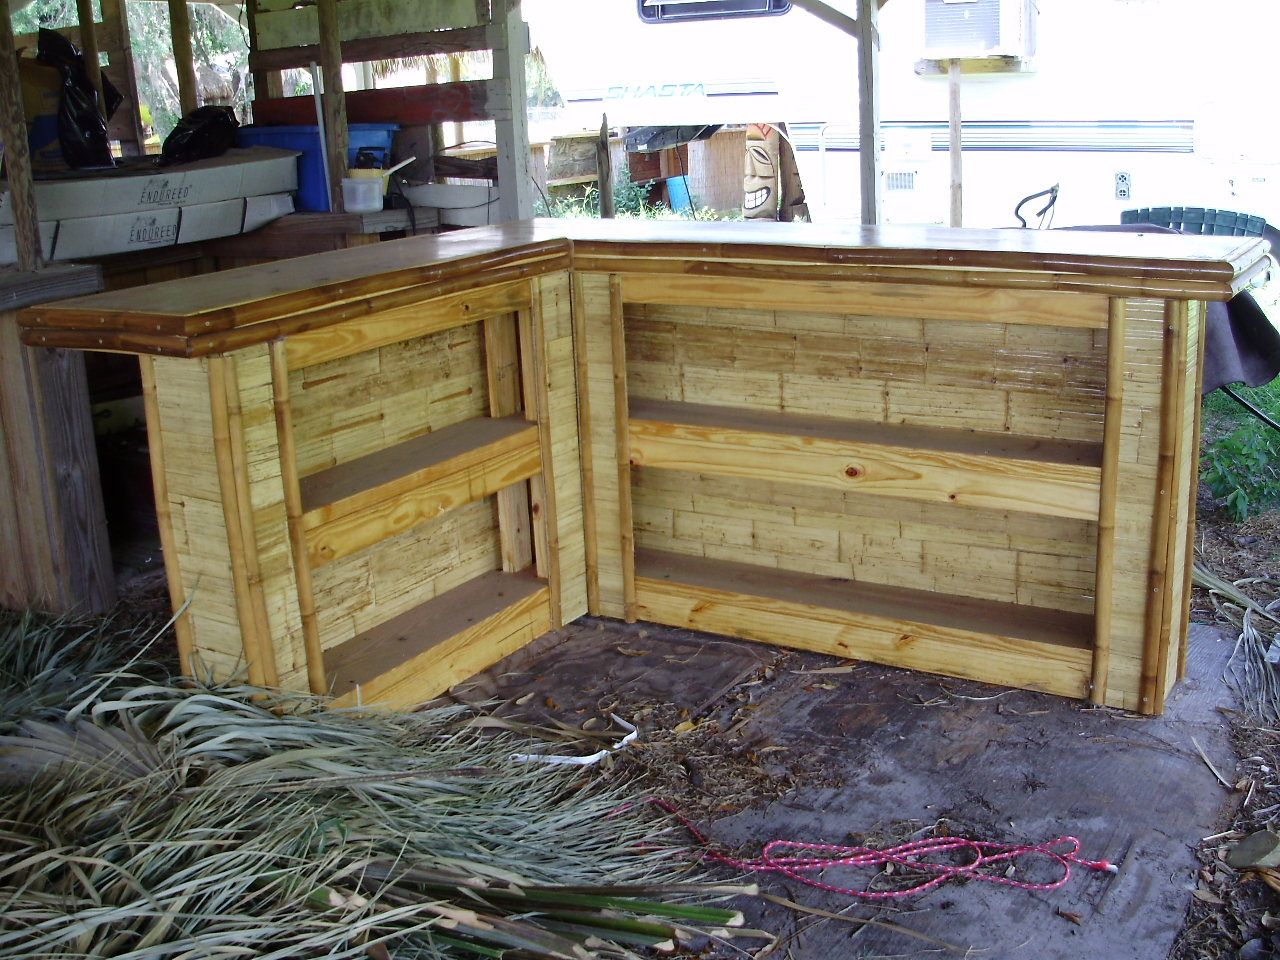 How to build an outdoor bar shaped small flattened bamboo board tiki